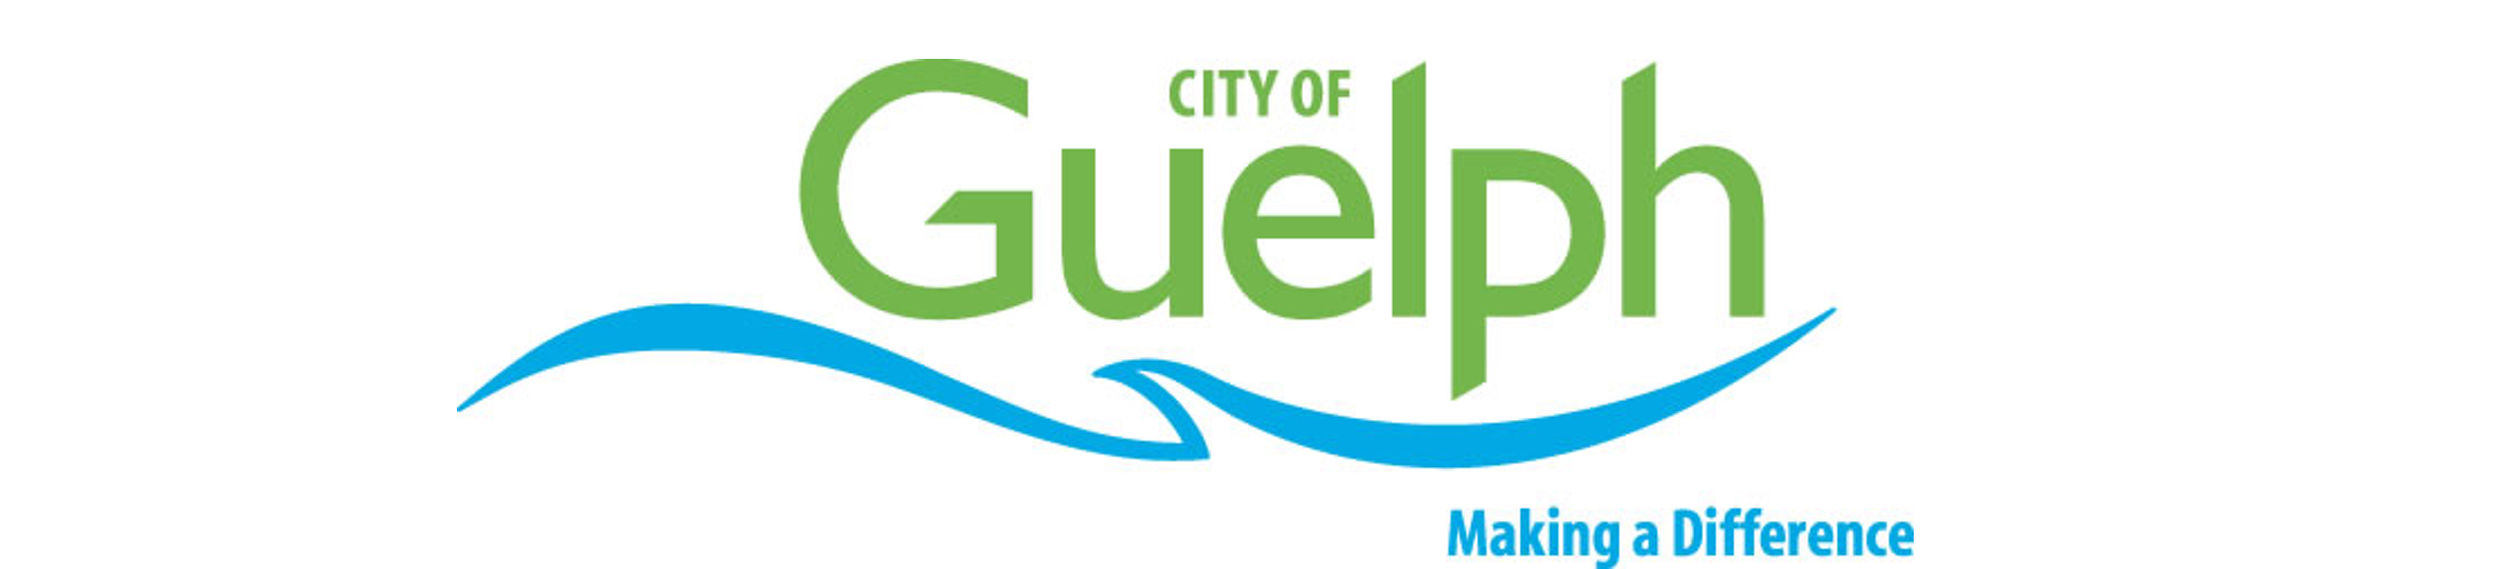 City of guelph Banner - Link.jpg